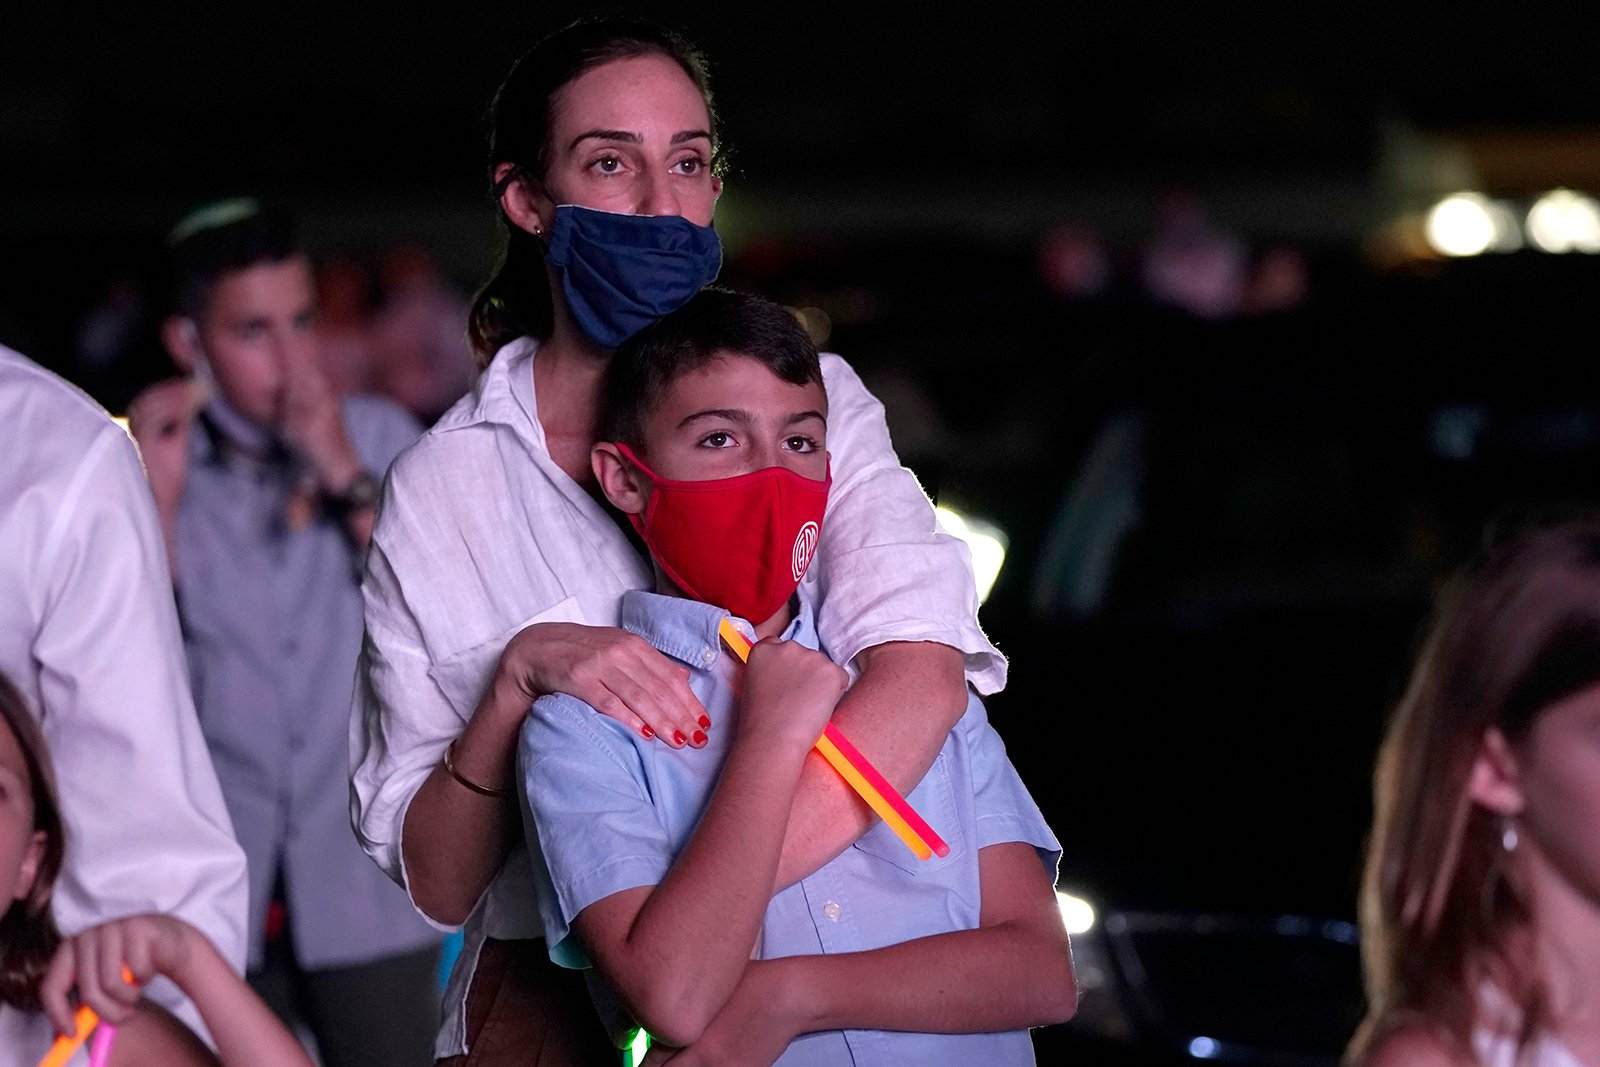 Dana Herseovici stands with her son Tomas during an outdoor Yom Kippur service hosted by the Aventura Turnberry Jewish Center, during the coronavirus pandemic, Sept. 28, 2020, at the Dezerland Park drive-in theatre in North Miami, Florida. (AP Photo/Lynne Sladky)